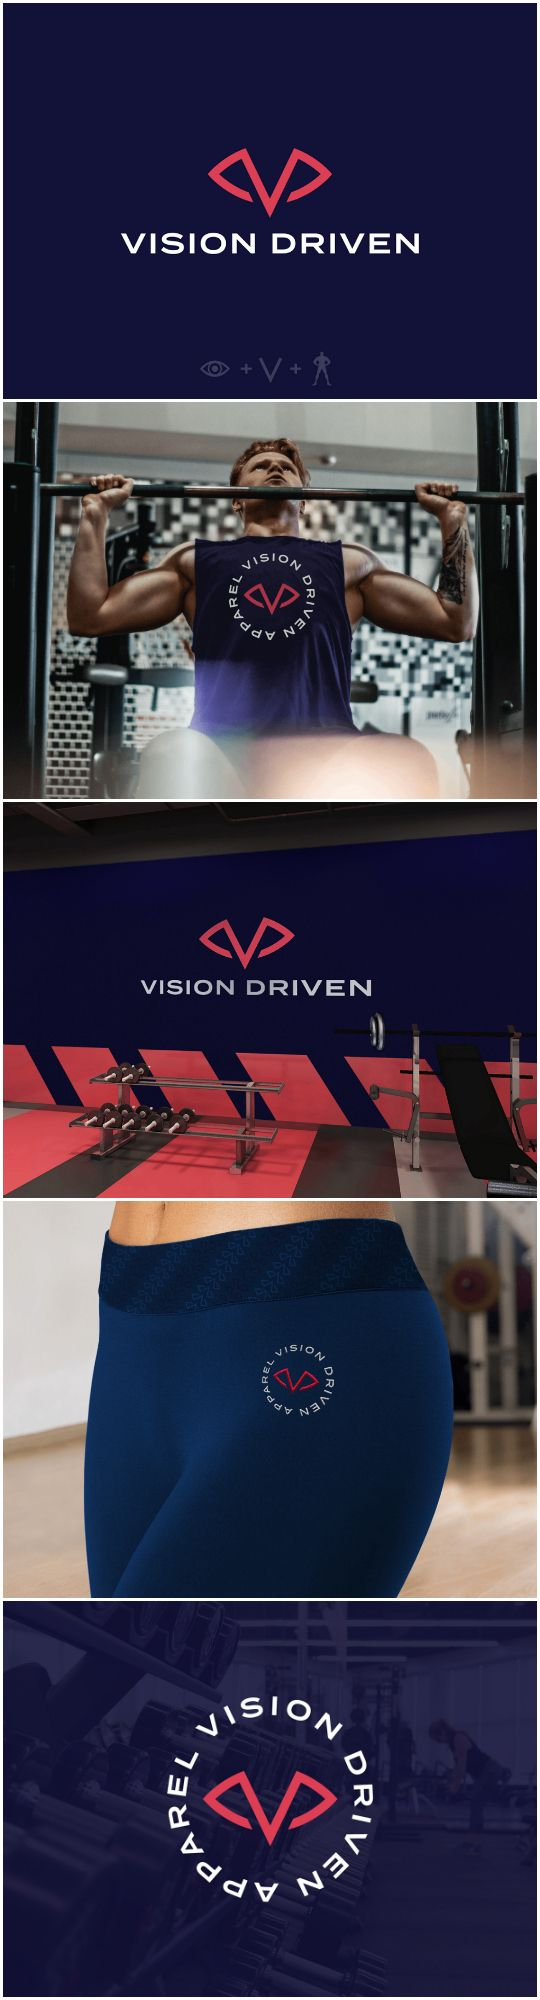 Vision Driven Gym and Apparel Branding (With images